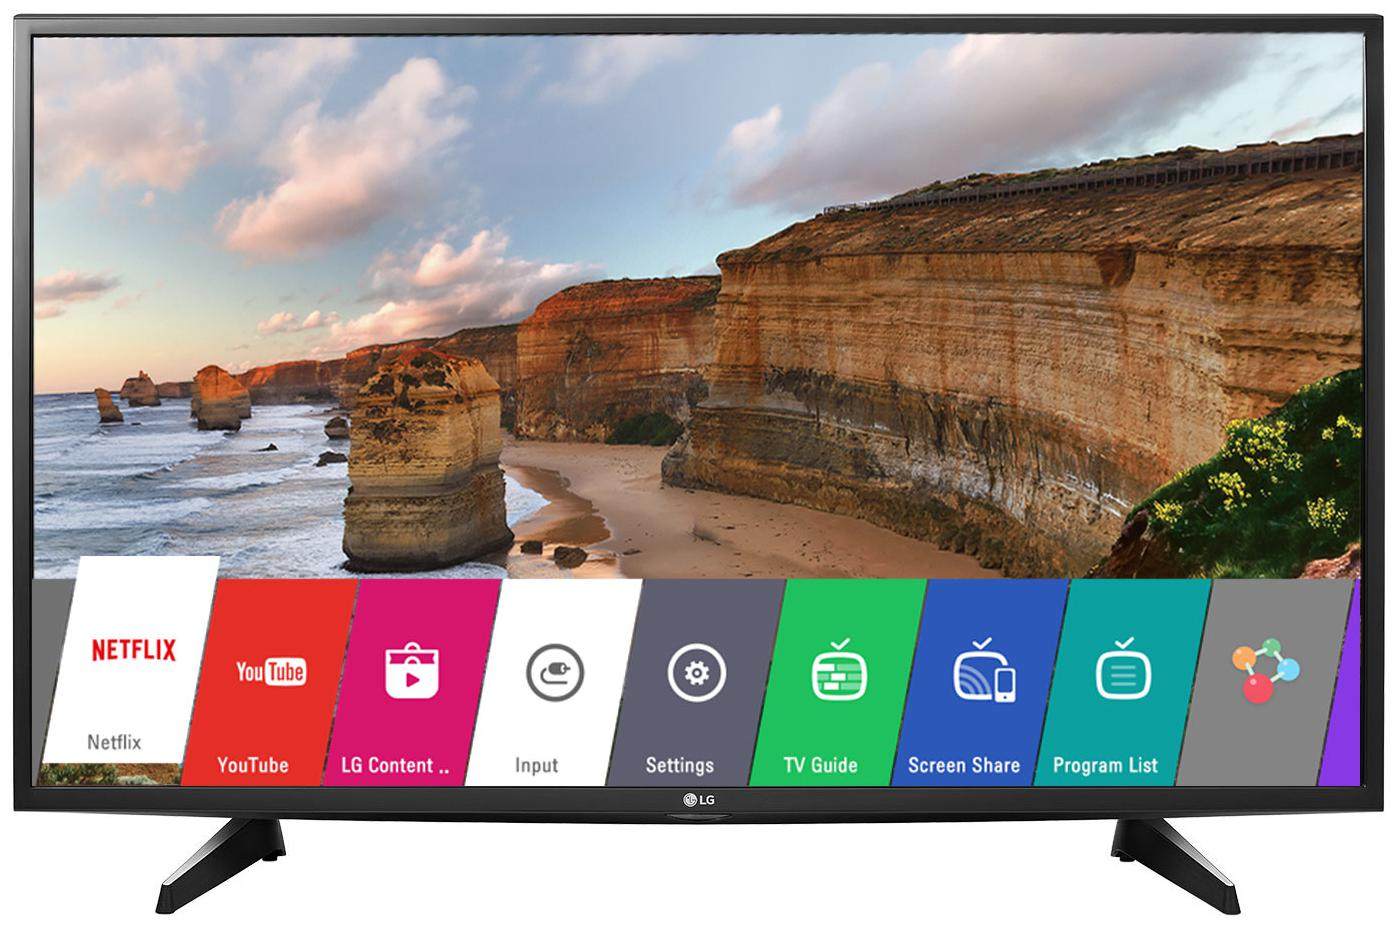 LG 43 Inches Full HD LED Smart TV (43LH576T, Black)